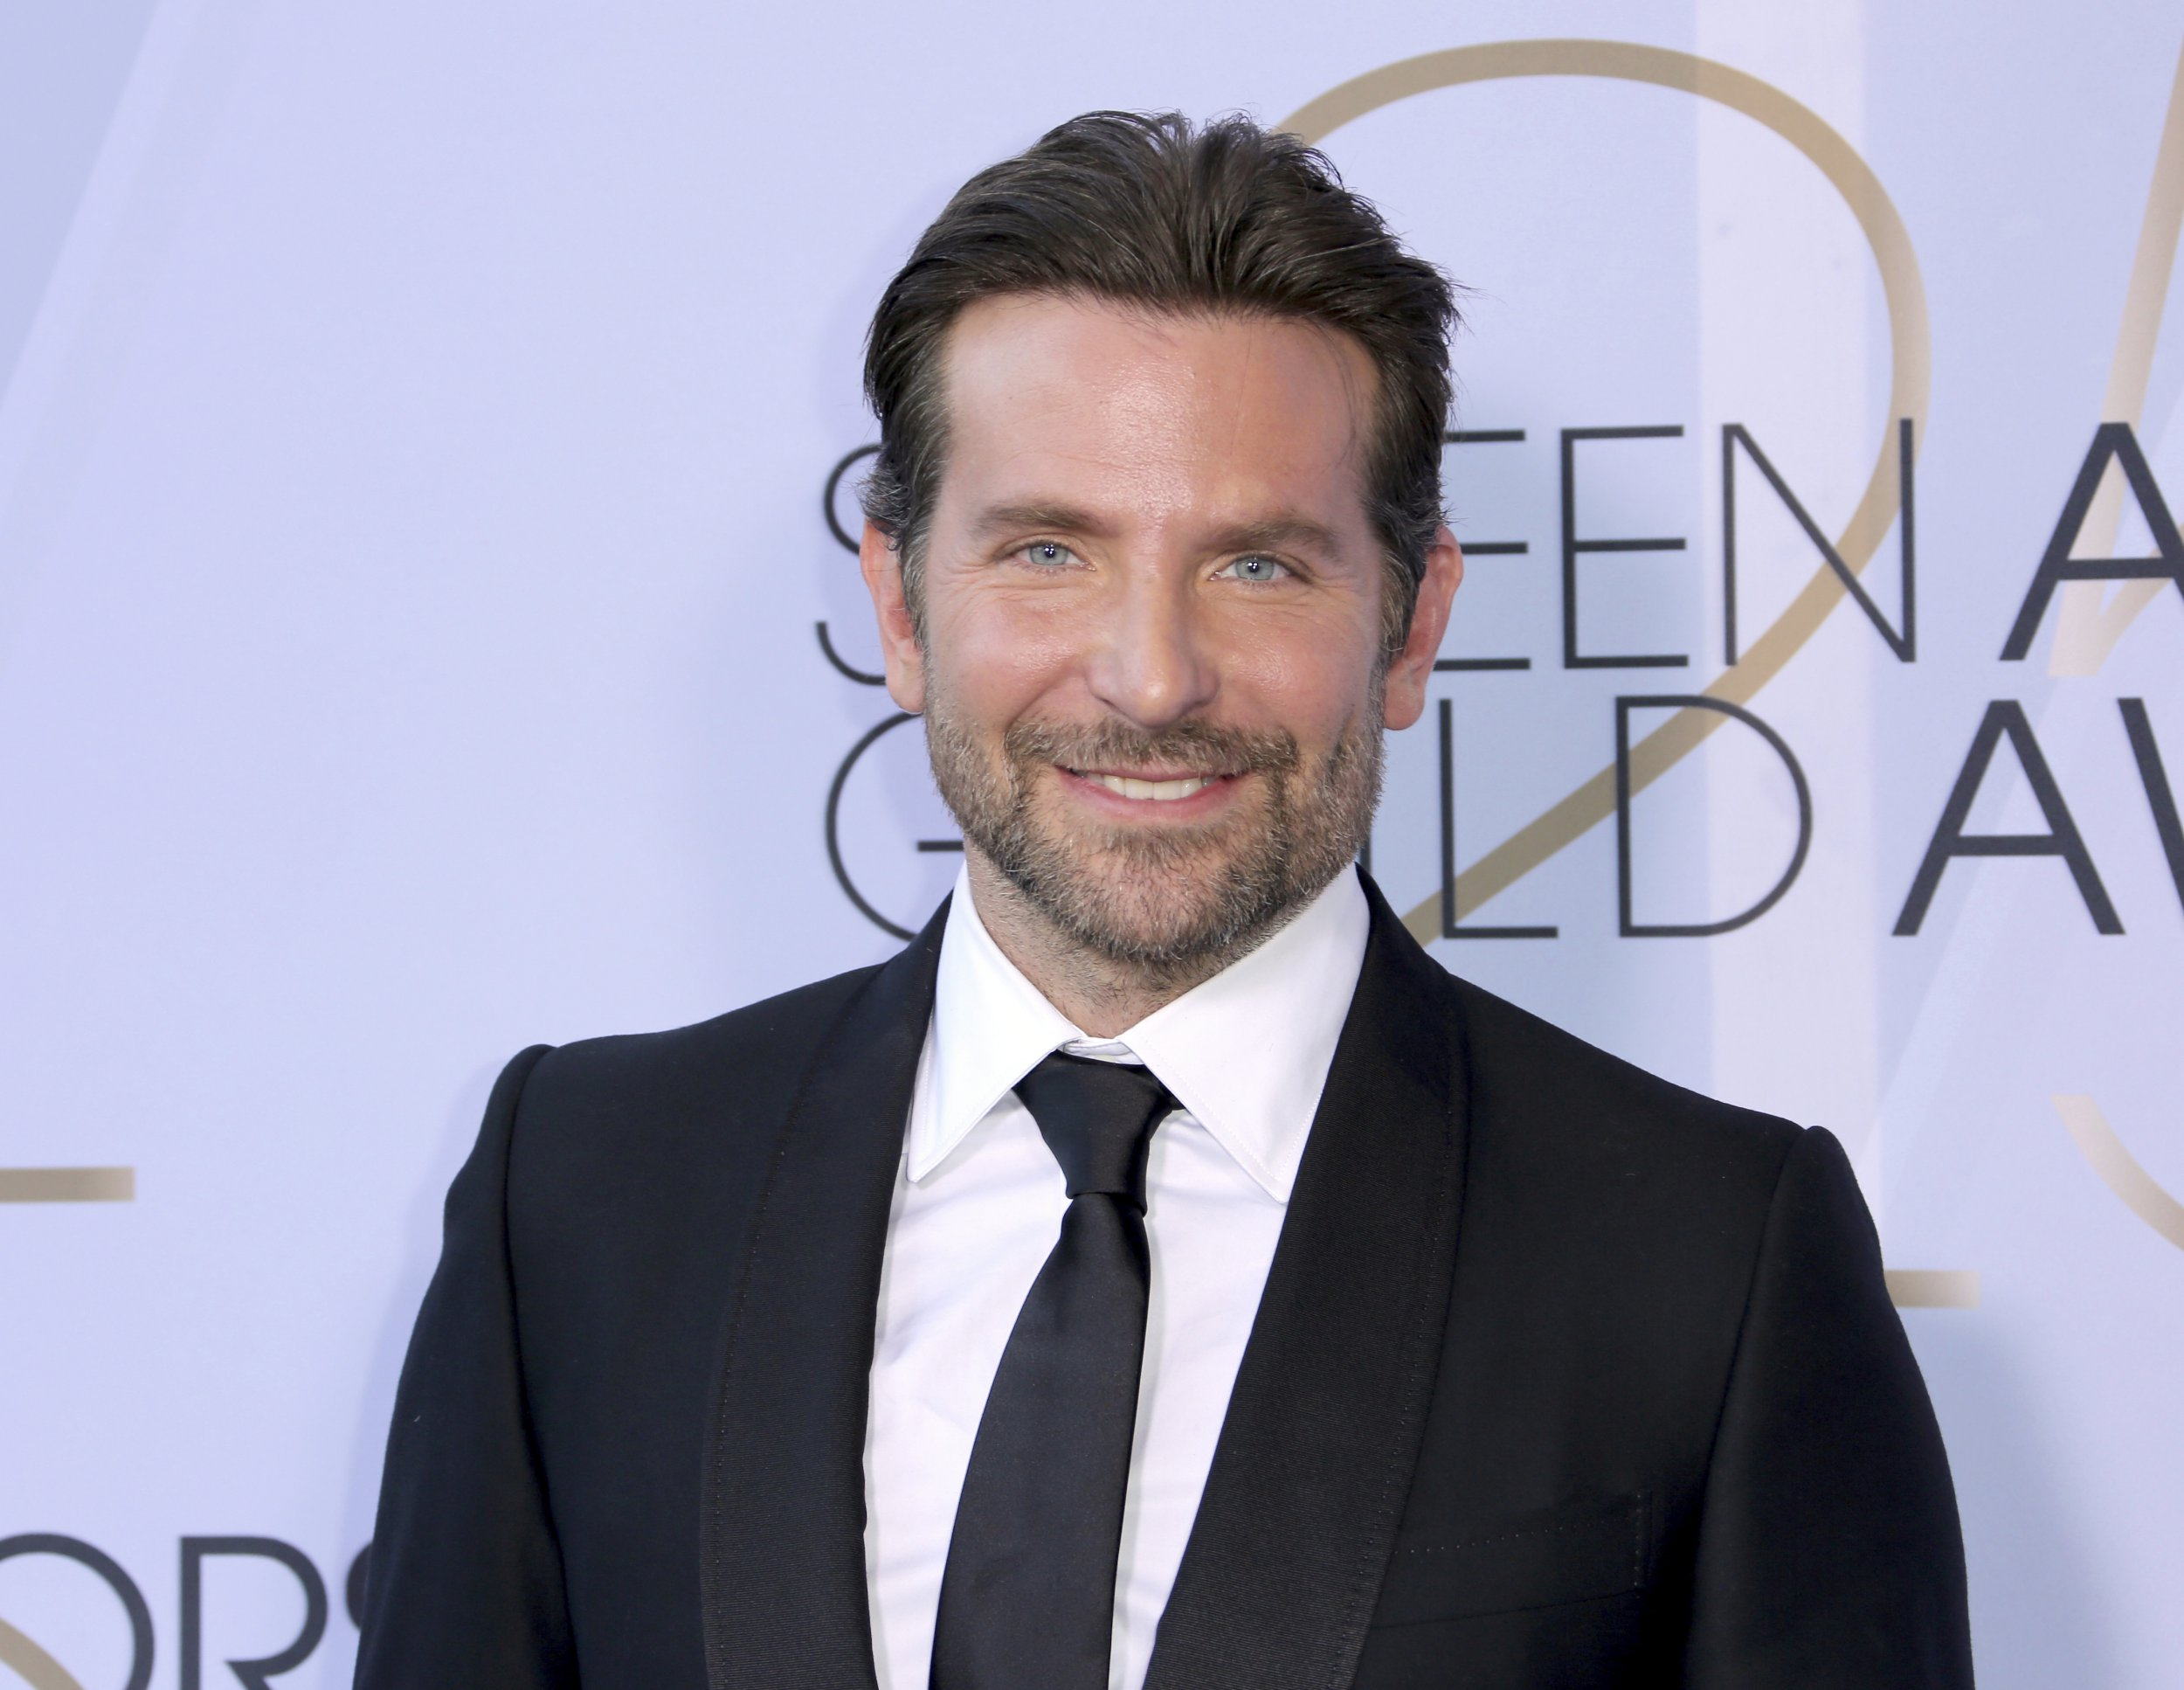 Bradley Cooper admits he was 'embarrassed' over Best Director snub at Oscars